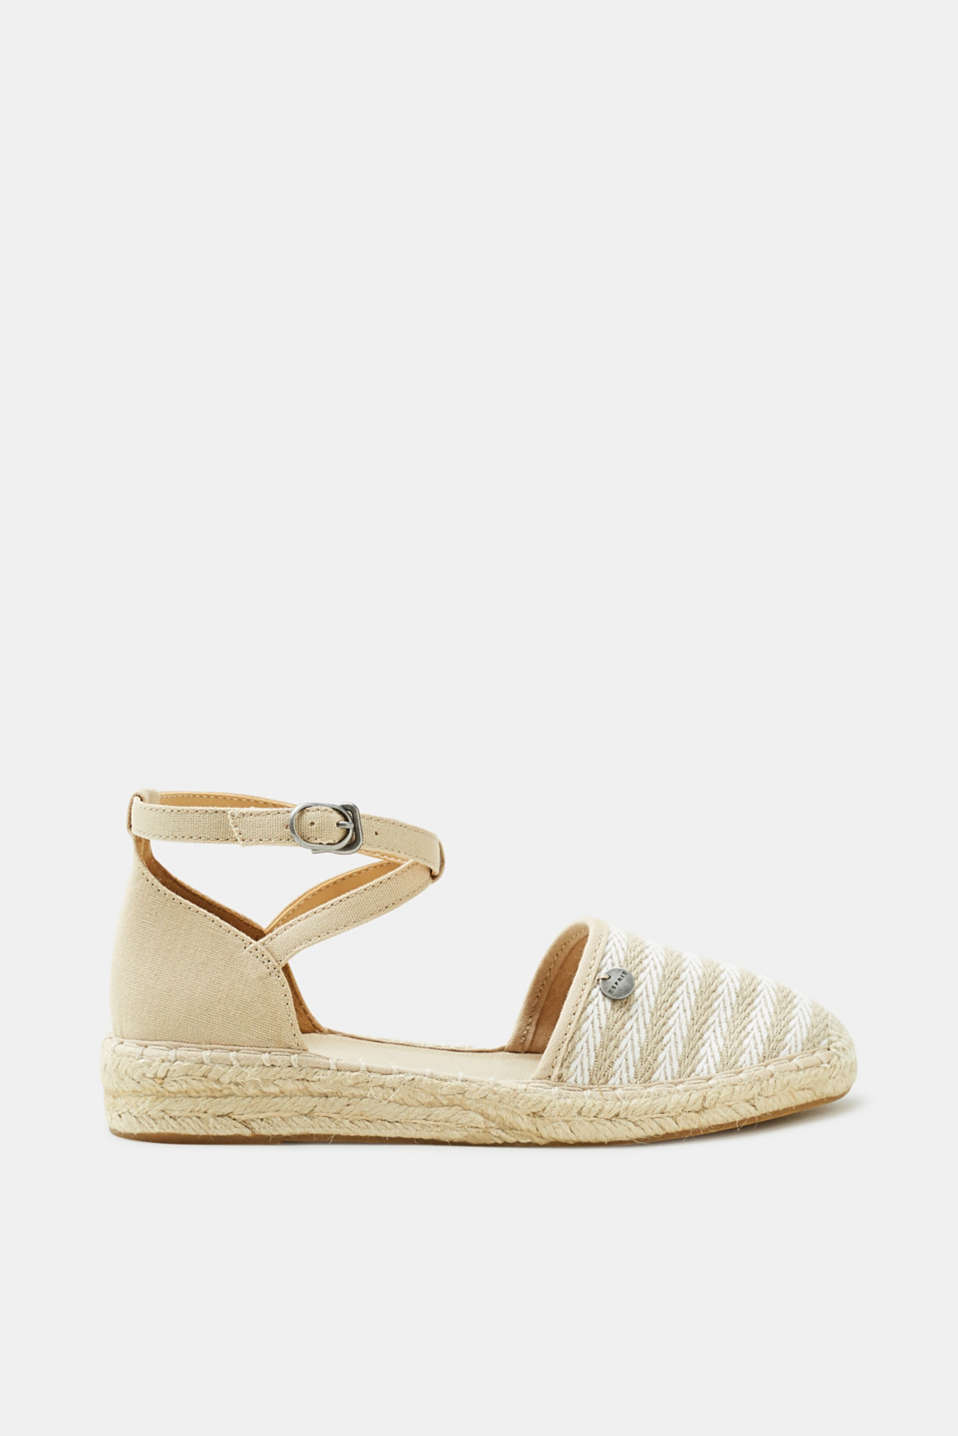 Esprit - Espadrilles with a striped pattern